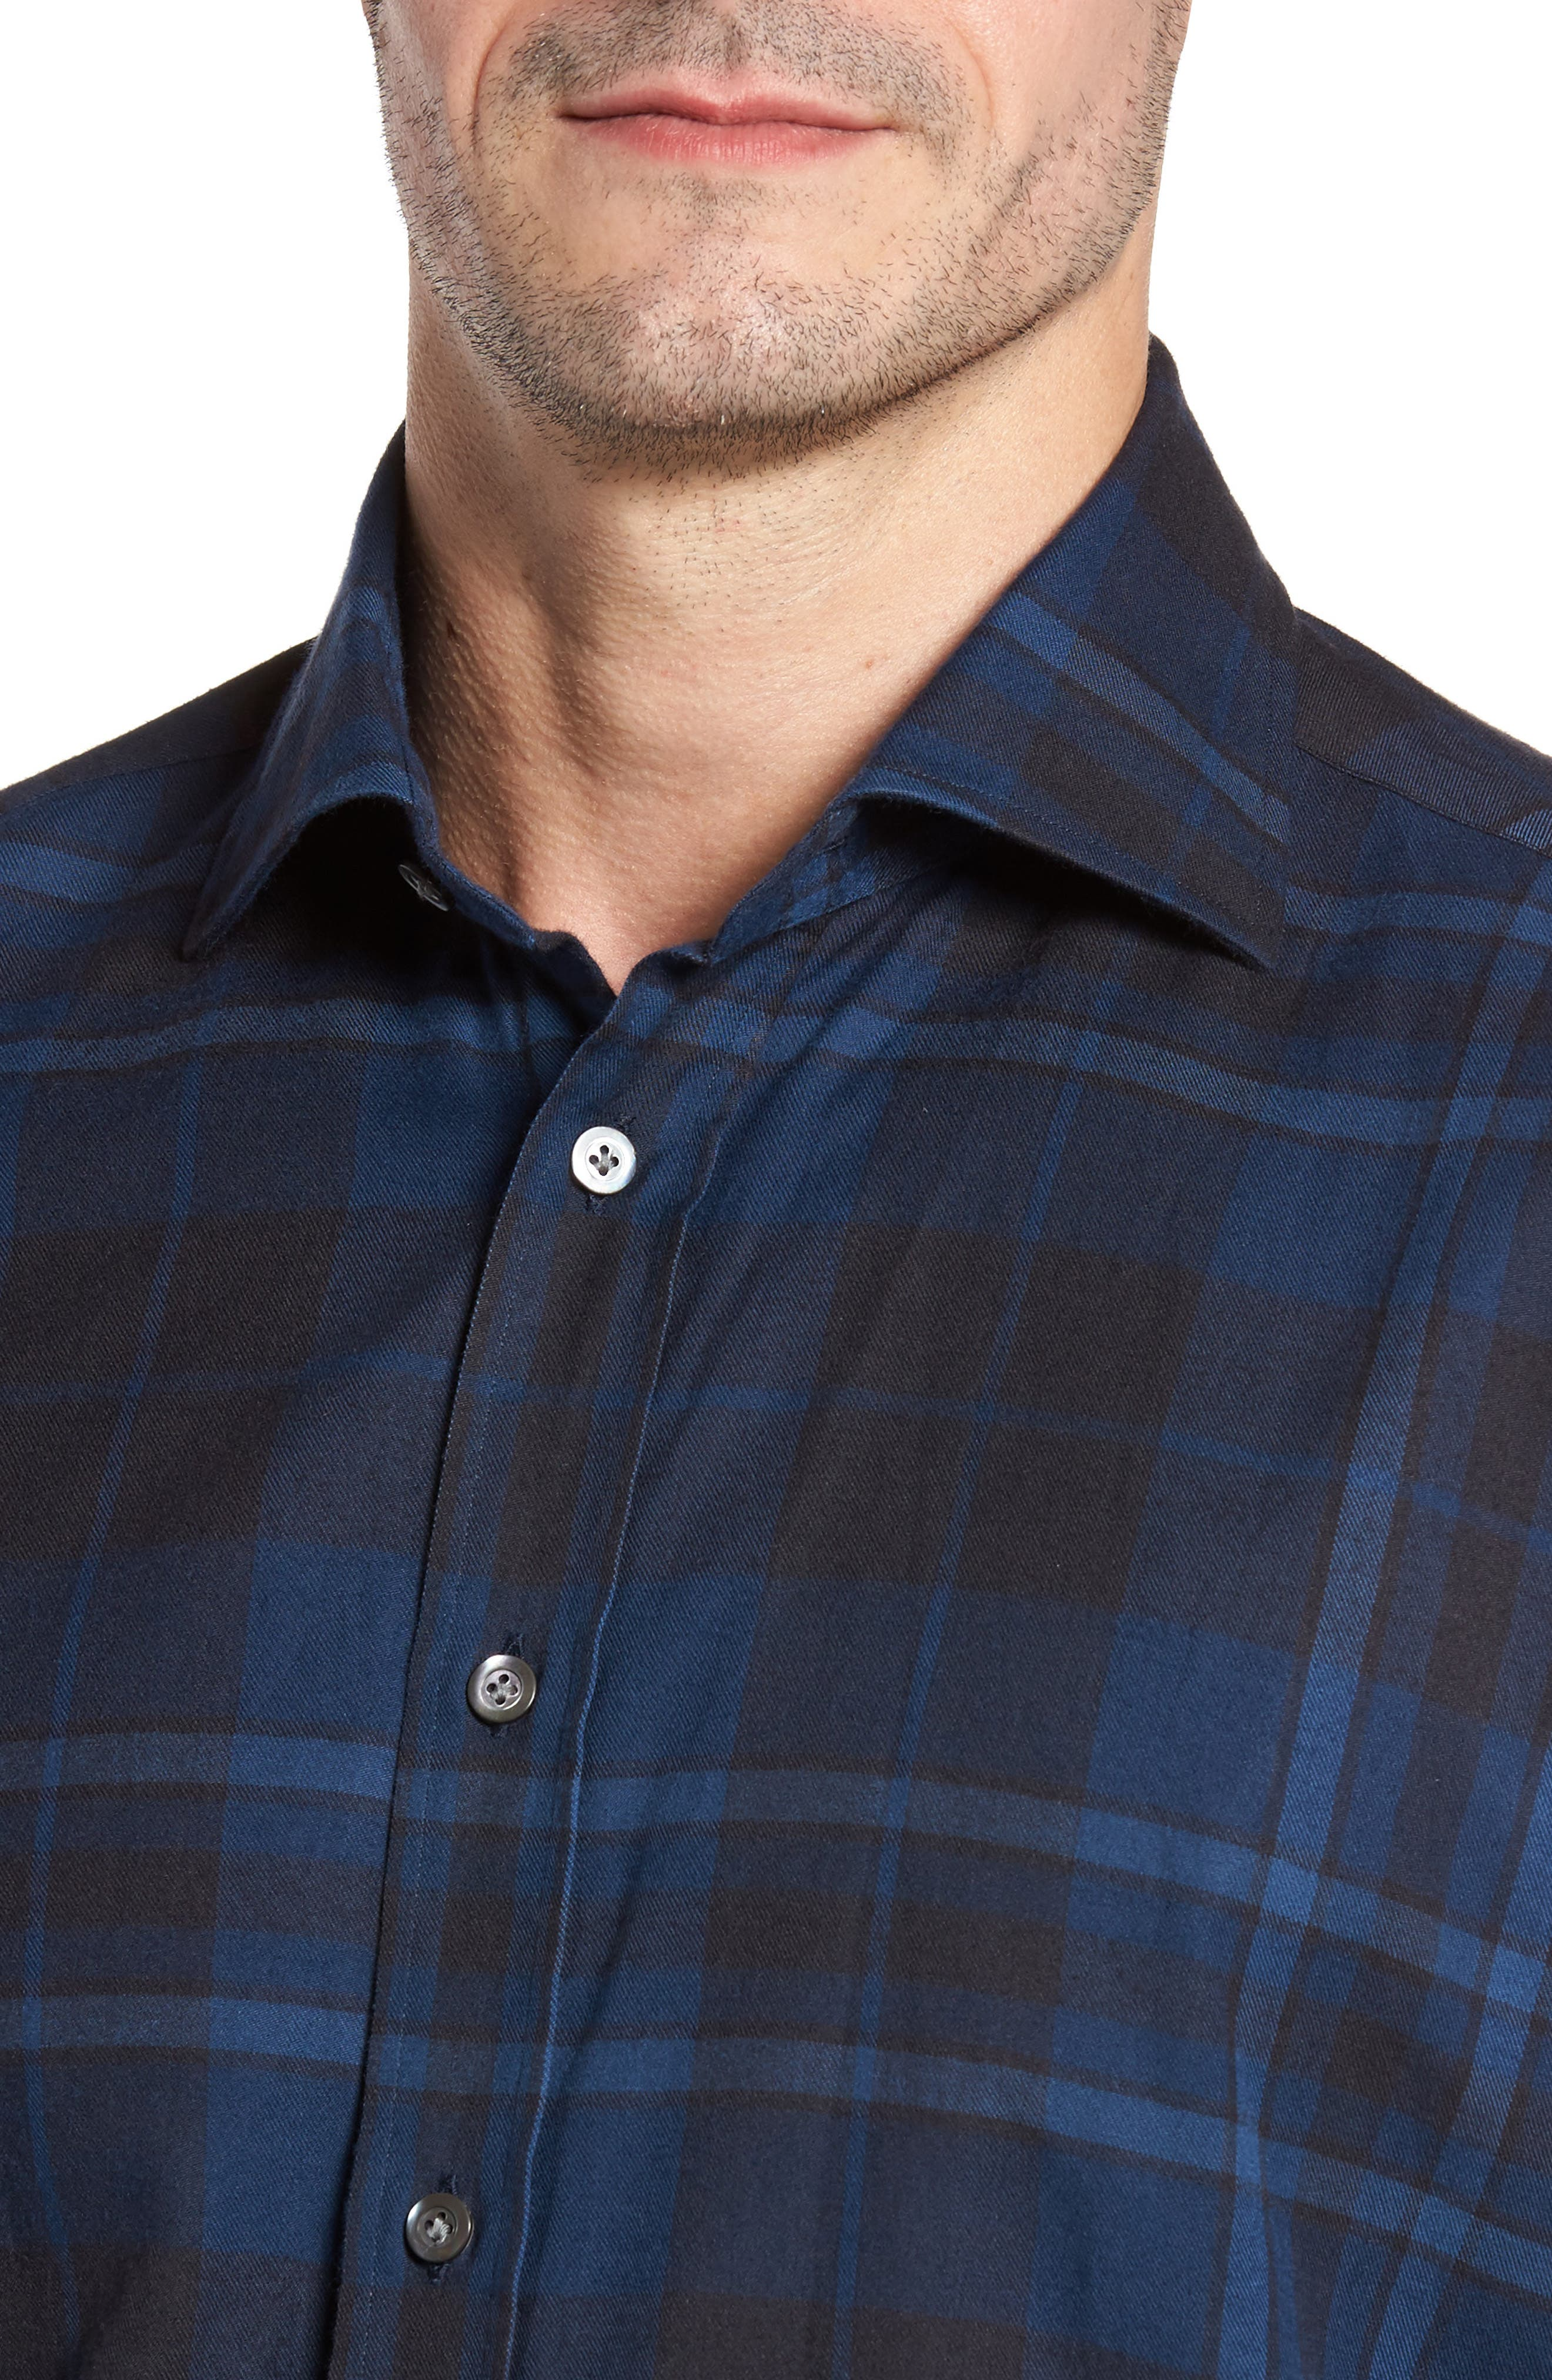 Trim Fit Plaid Sport Shirt,                             Alternate thumbnail 4, color,                             421